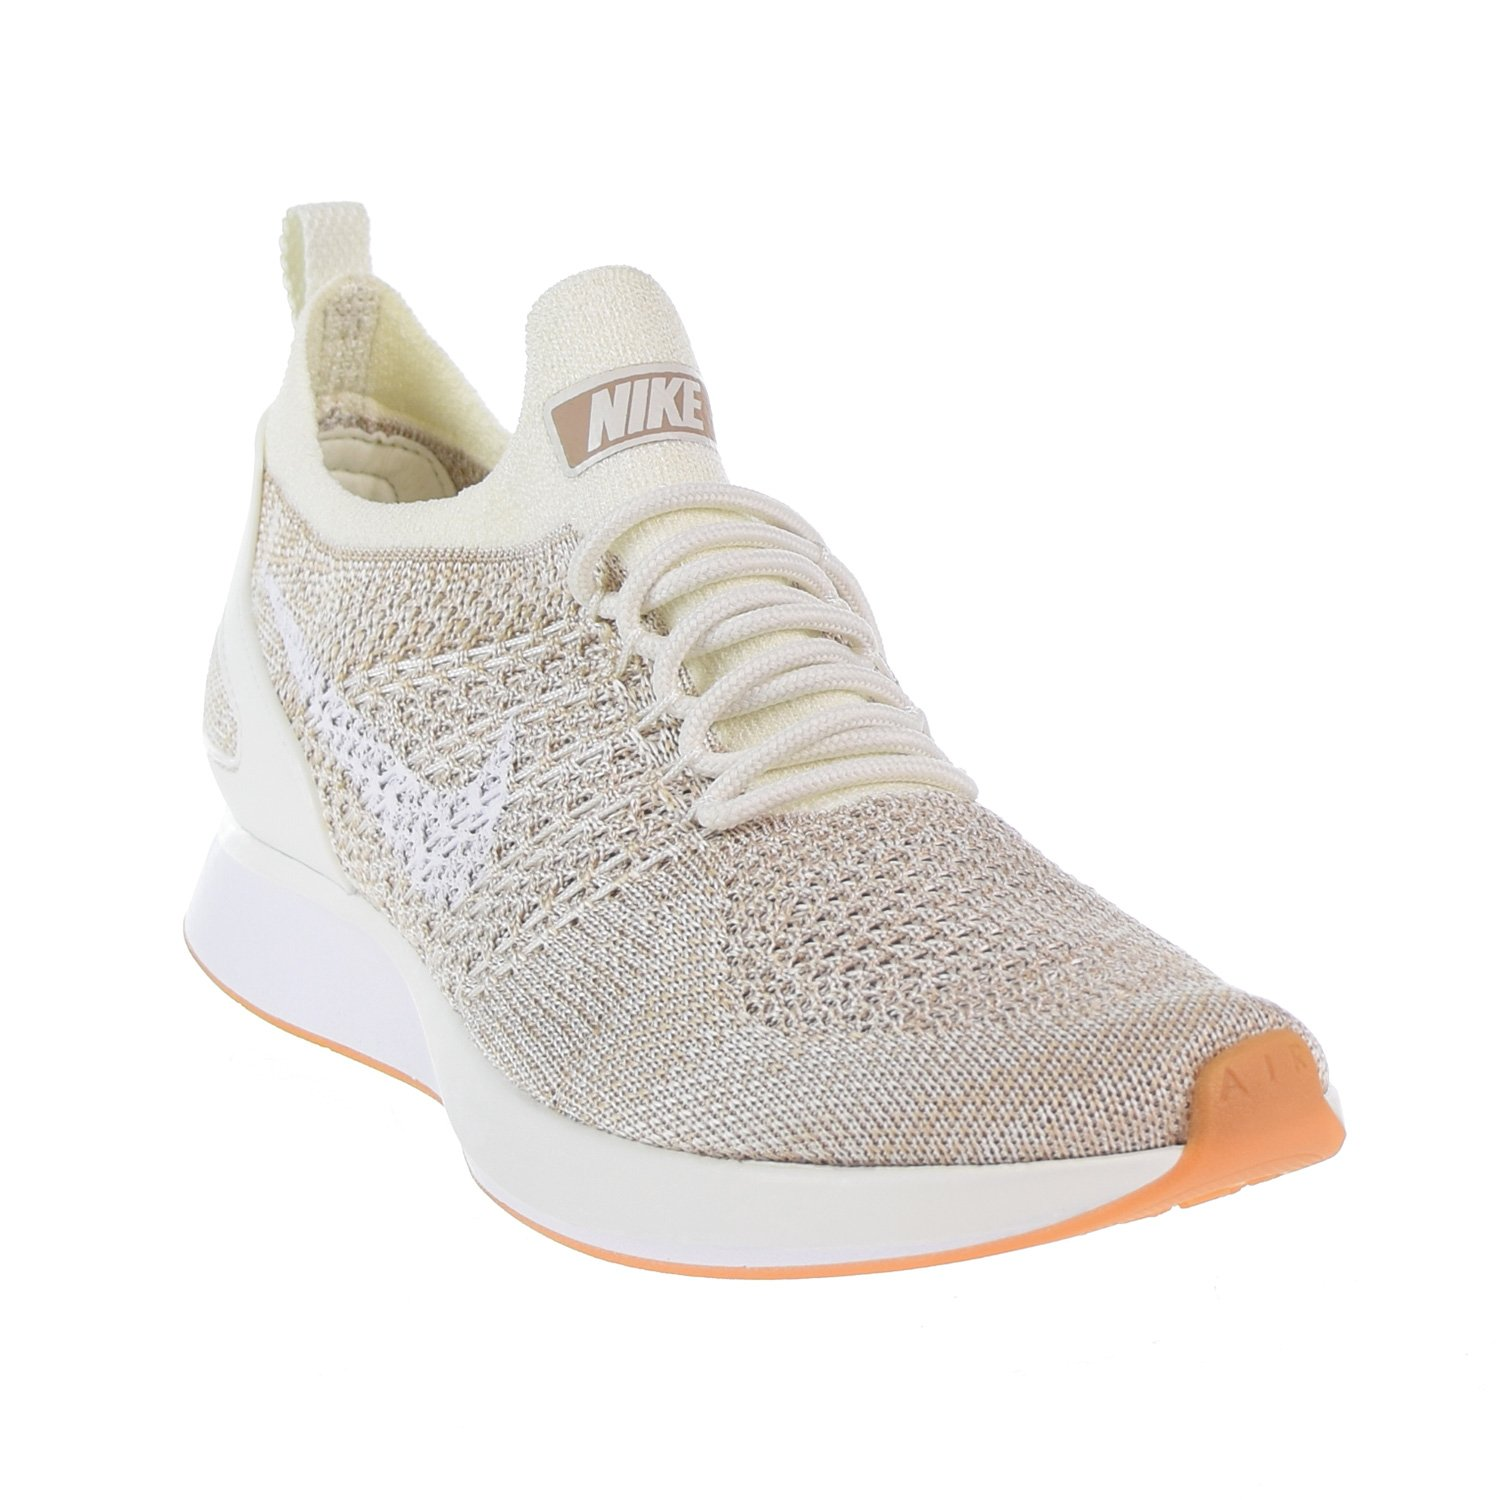 NIKE Womens Air Zoom Mariah Aa0521 Flyknit Racer Running Trainers Aa0521 Mariah Sneakers Shoes B079Z5TVZB 7.5 B(M) US|Sail/White/Gum 47cc0d